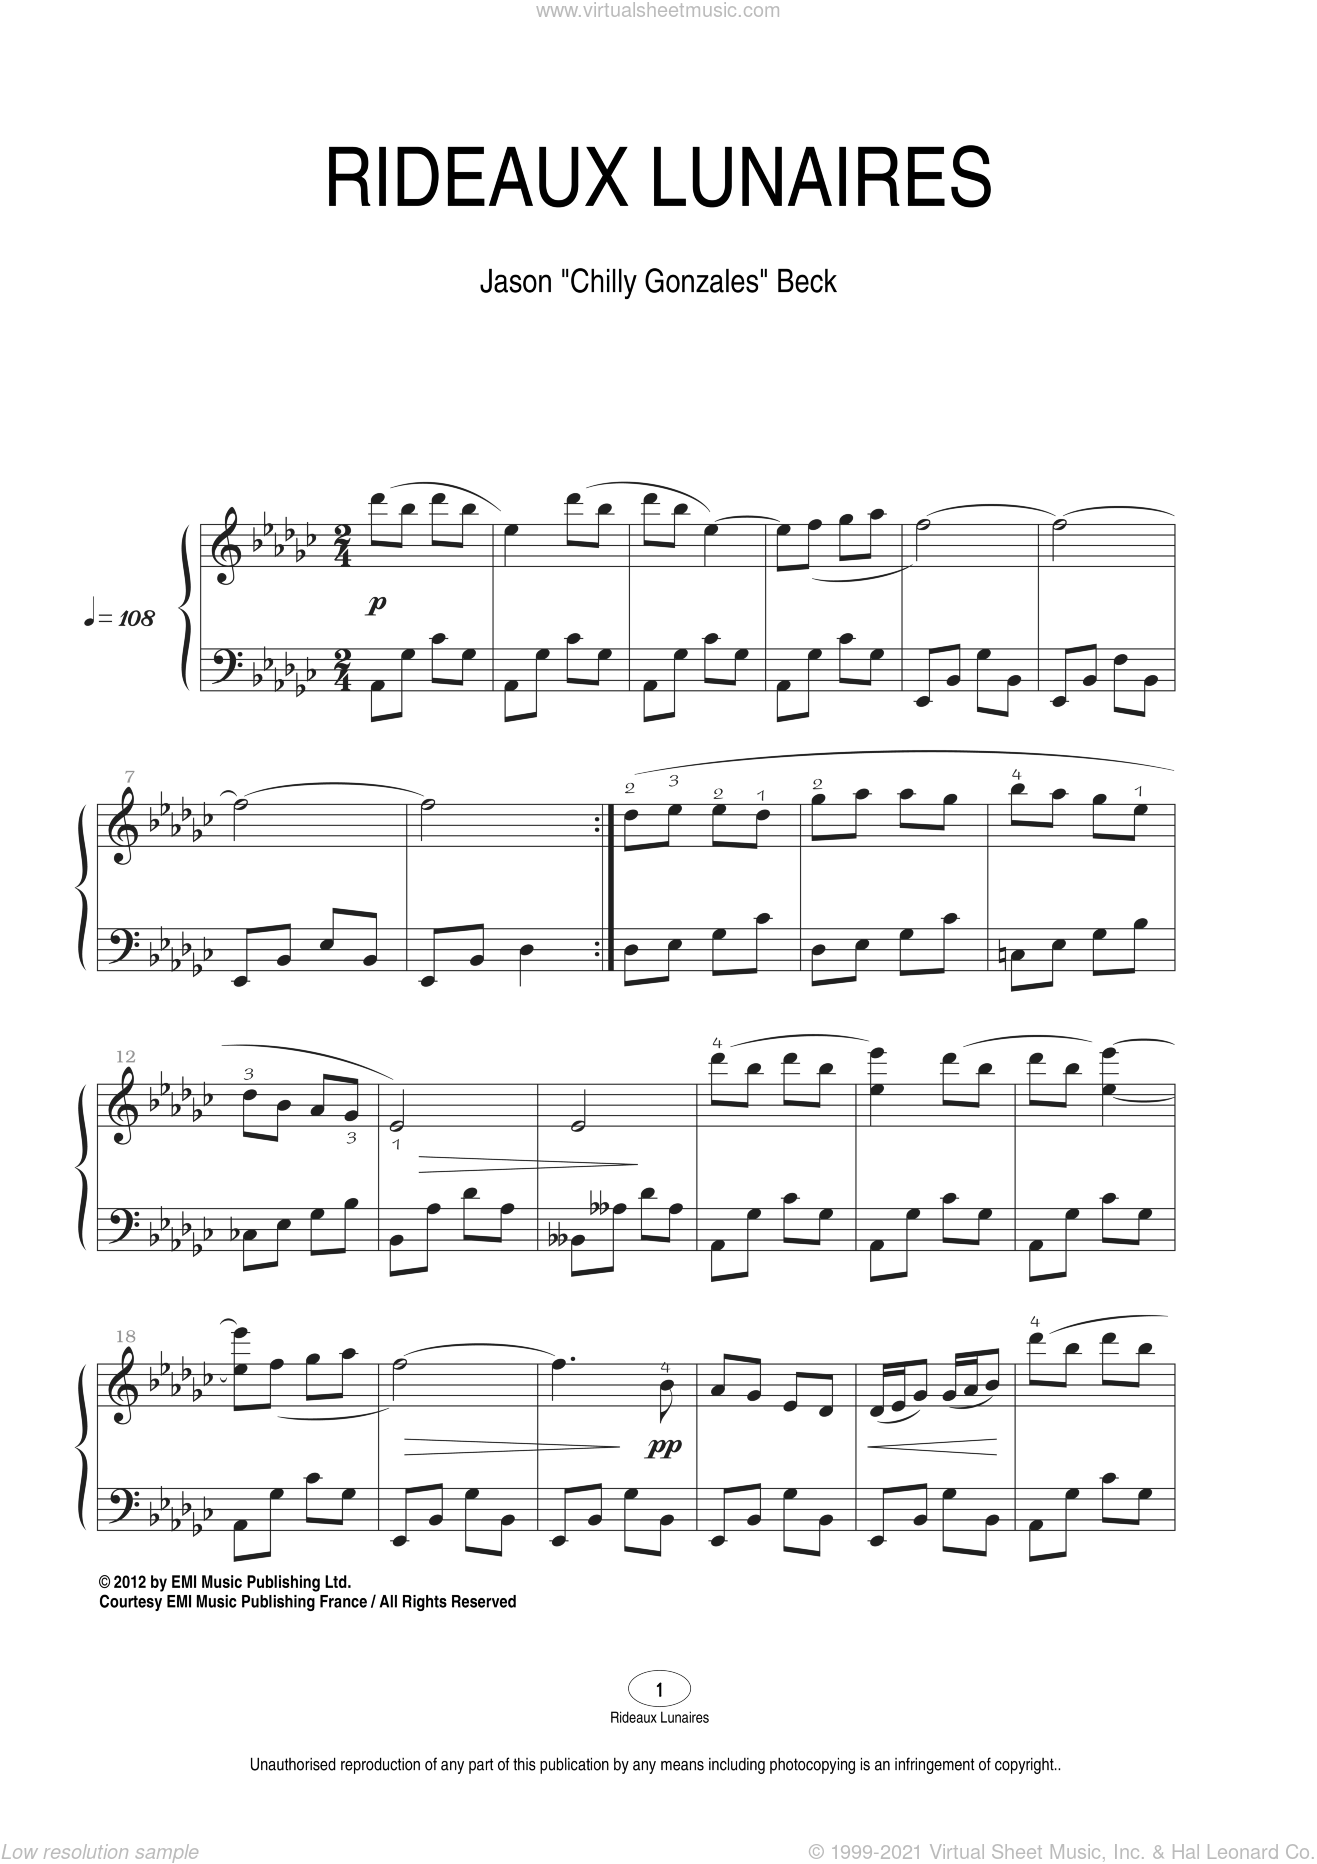 Rideaux Lunaires sheet music for piano solo by Chilly Gonzales and Jason Beck. Score Image Preview.